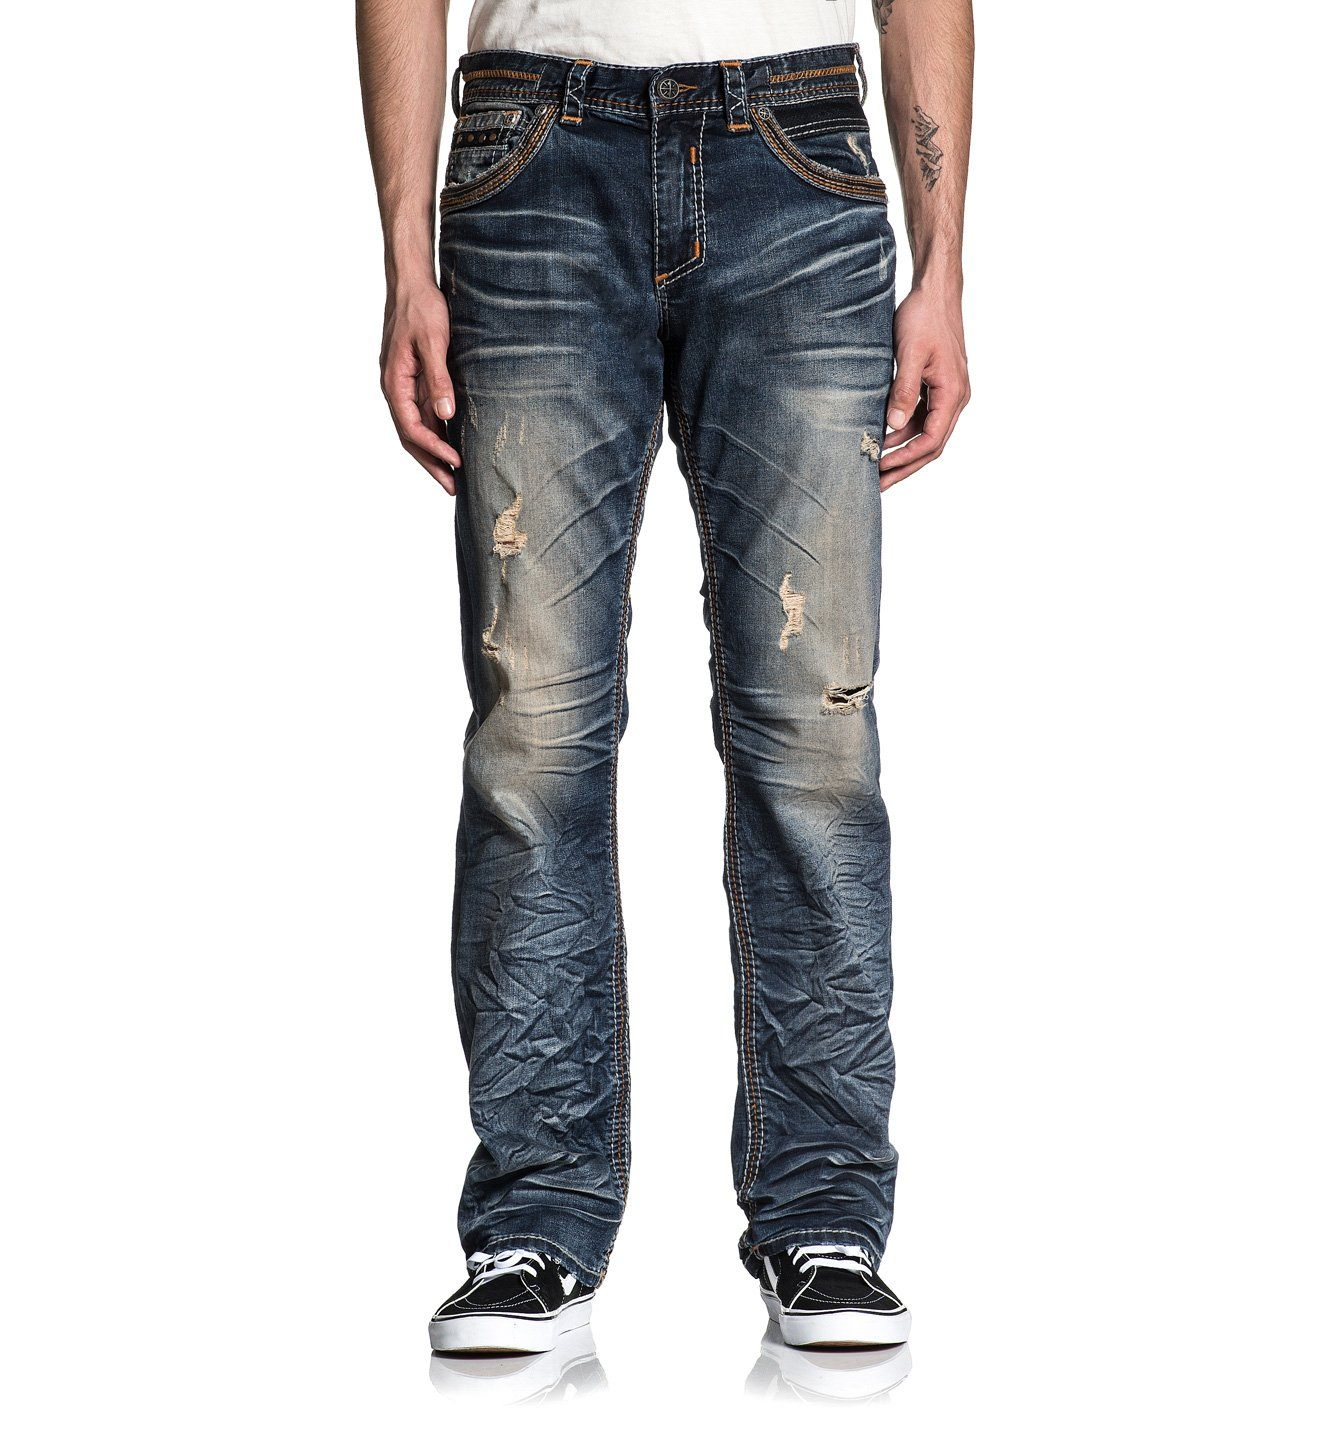 Mens Denim Bottoms - Blake Fleur Rogue